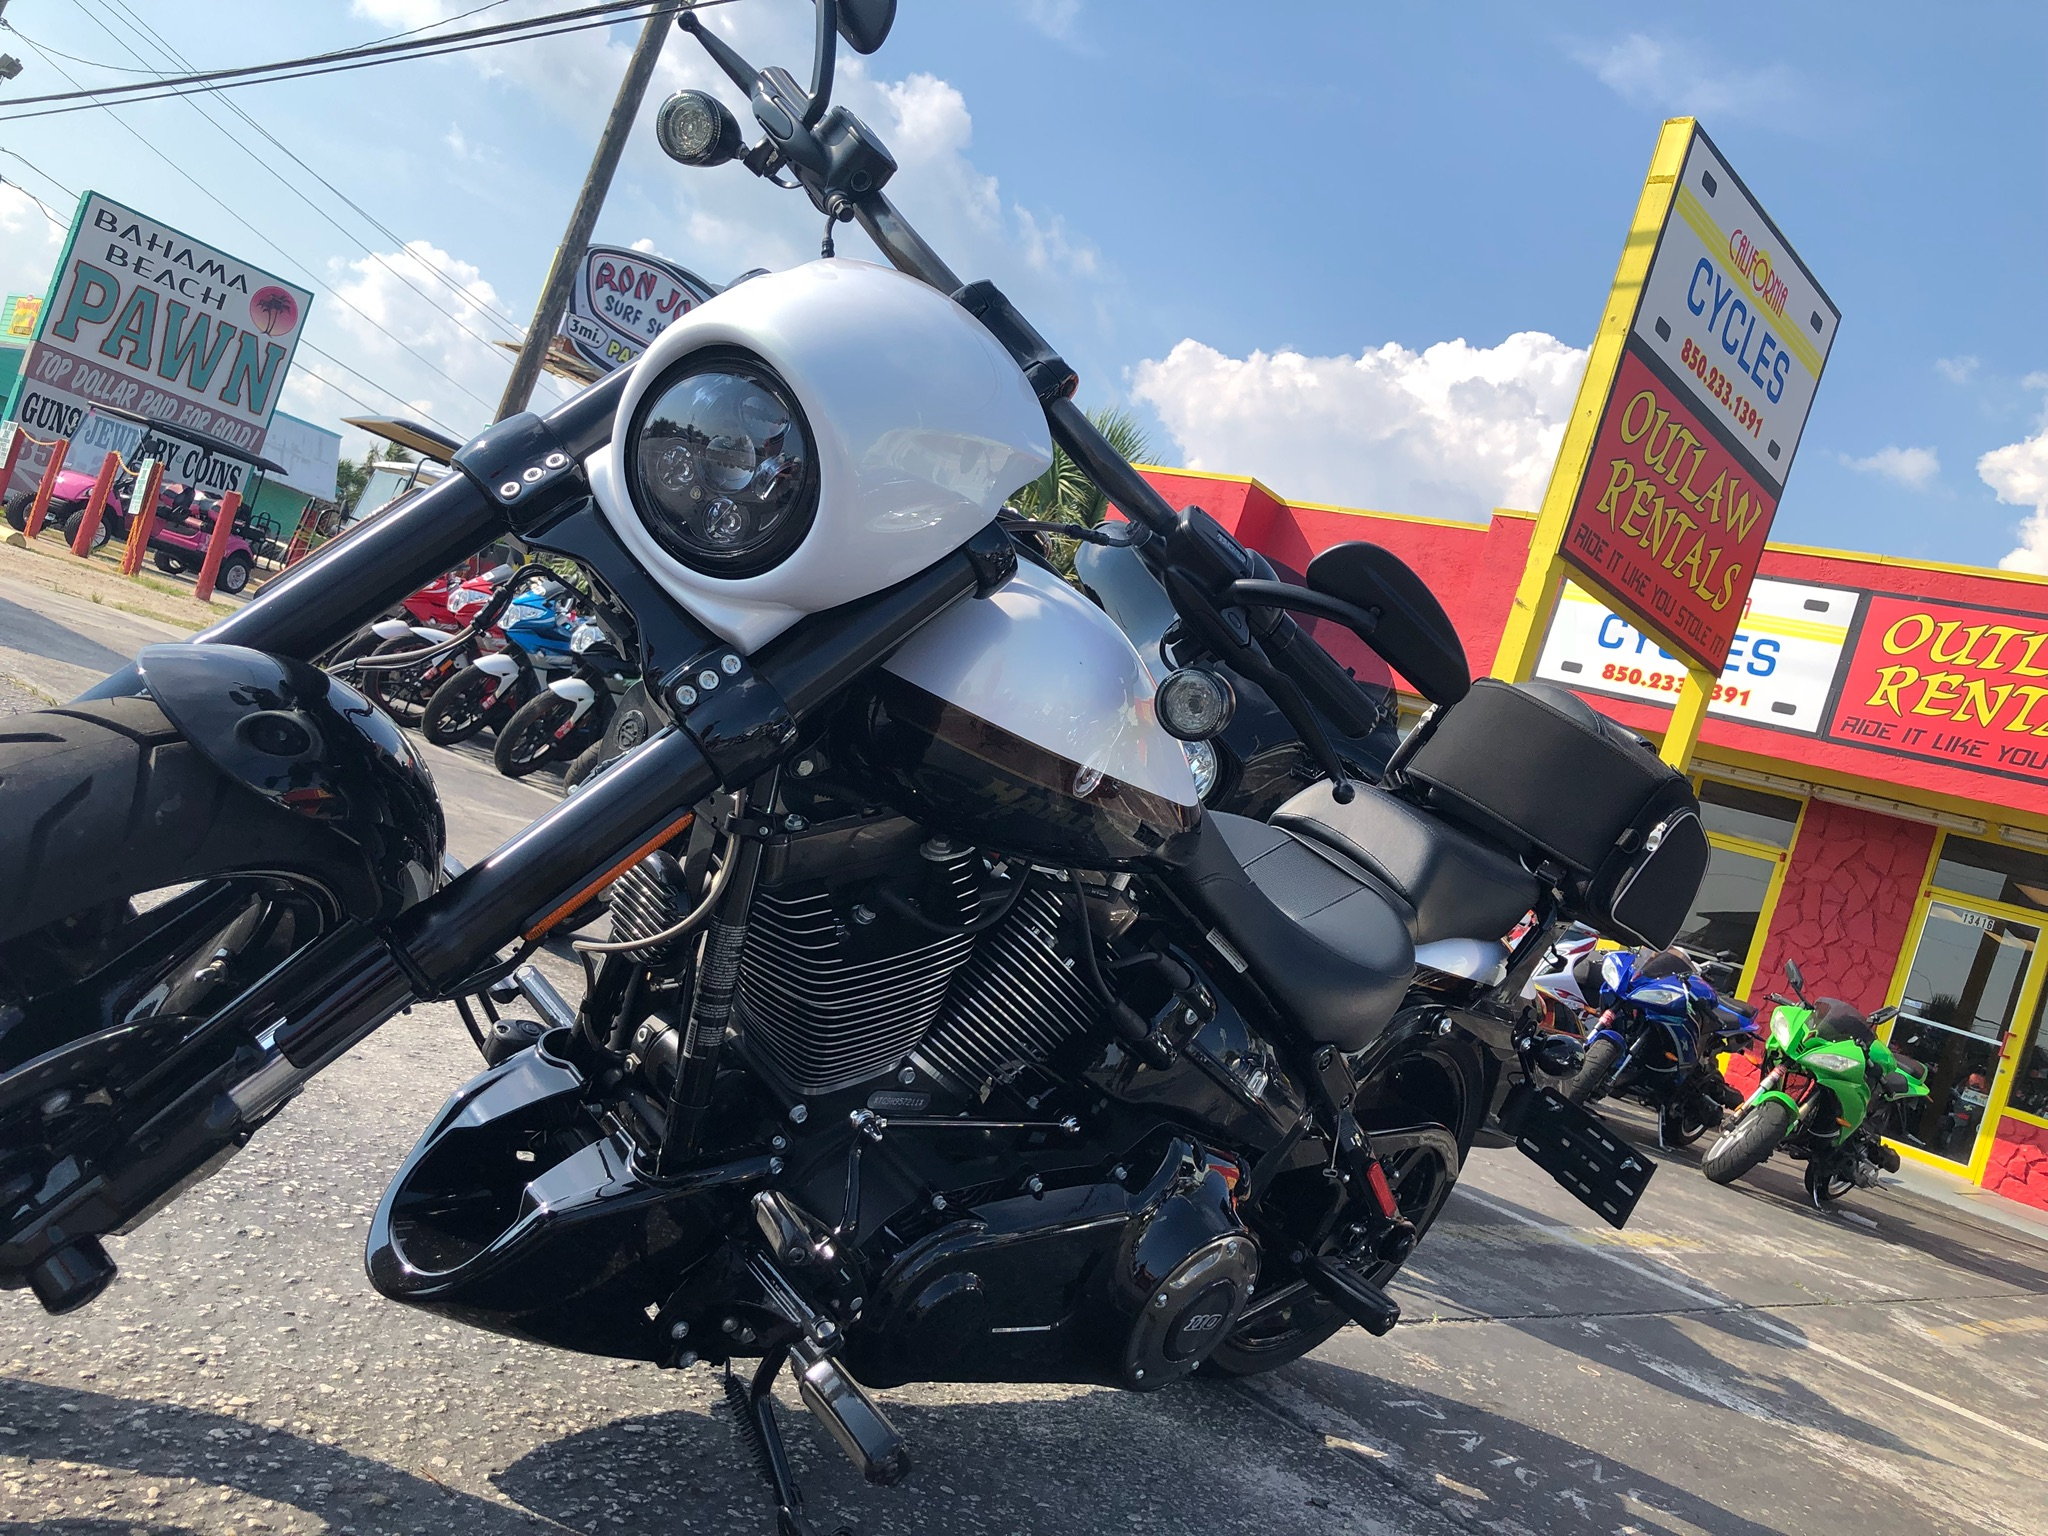 California Cycles - Outlaw Rentals - Motorcycle Rental in Panama City Beach